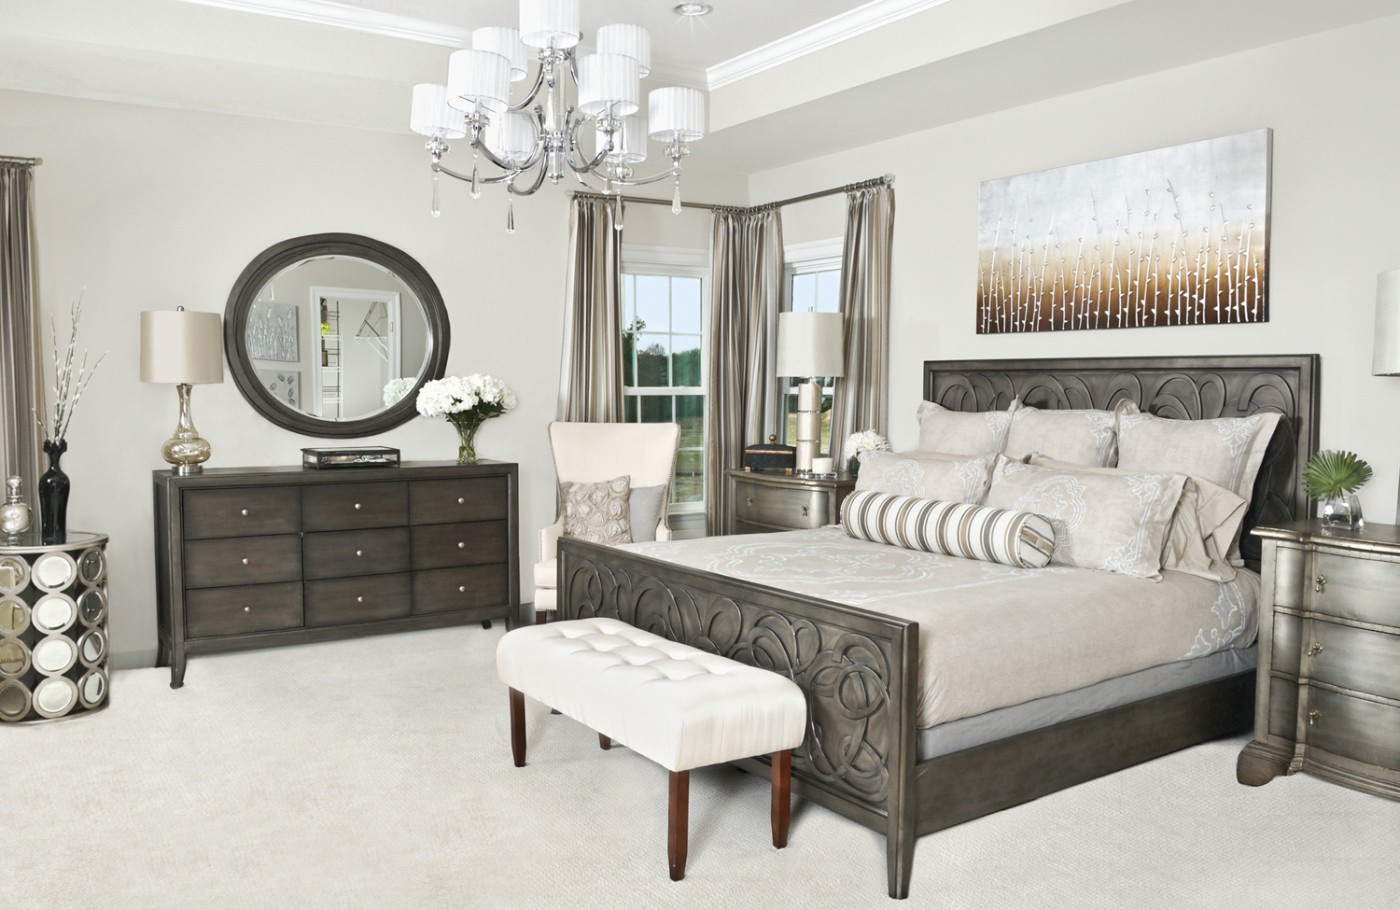 Model Homes Interiors model home interiors model homes Model Home Interiors Model Homes